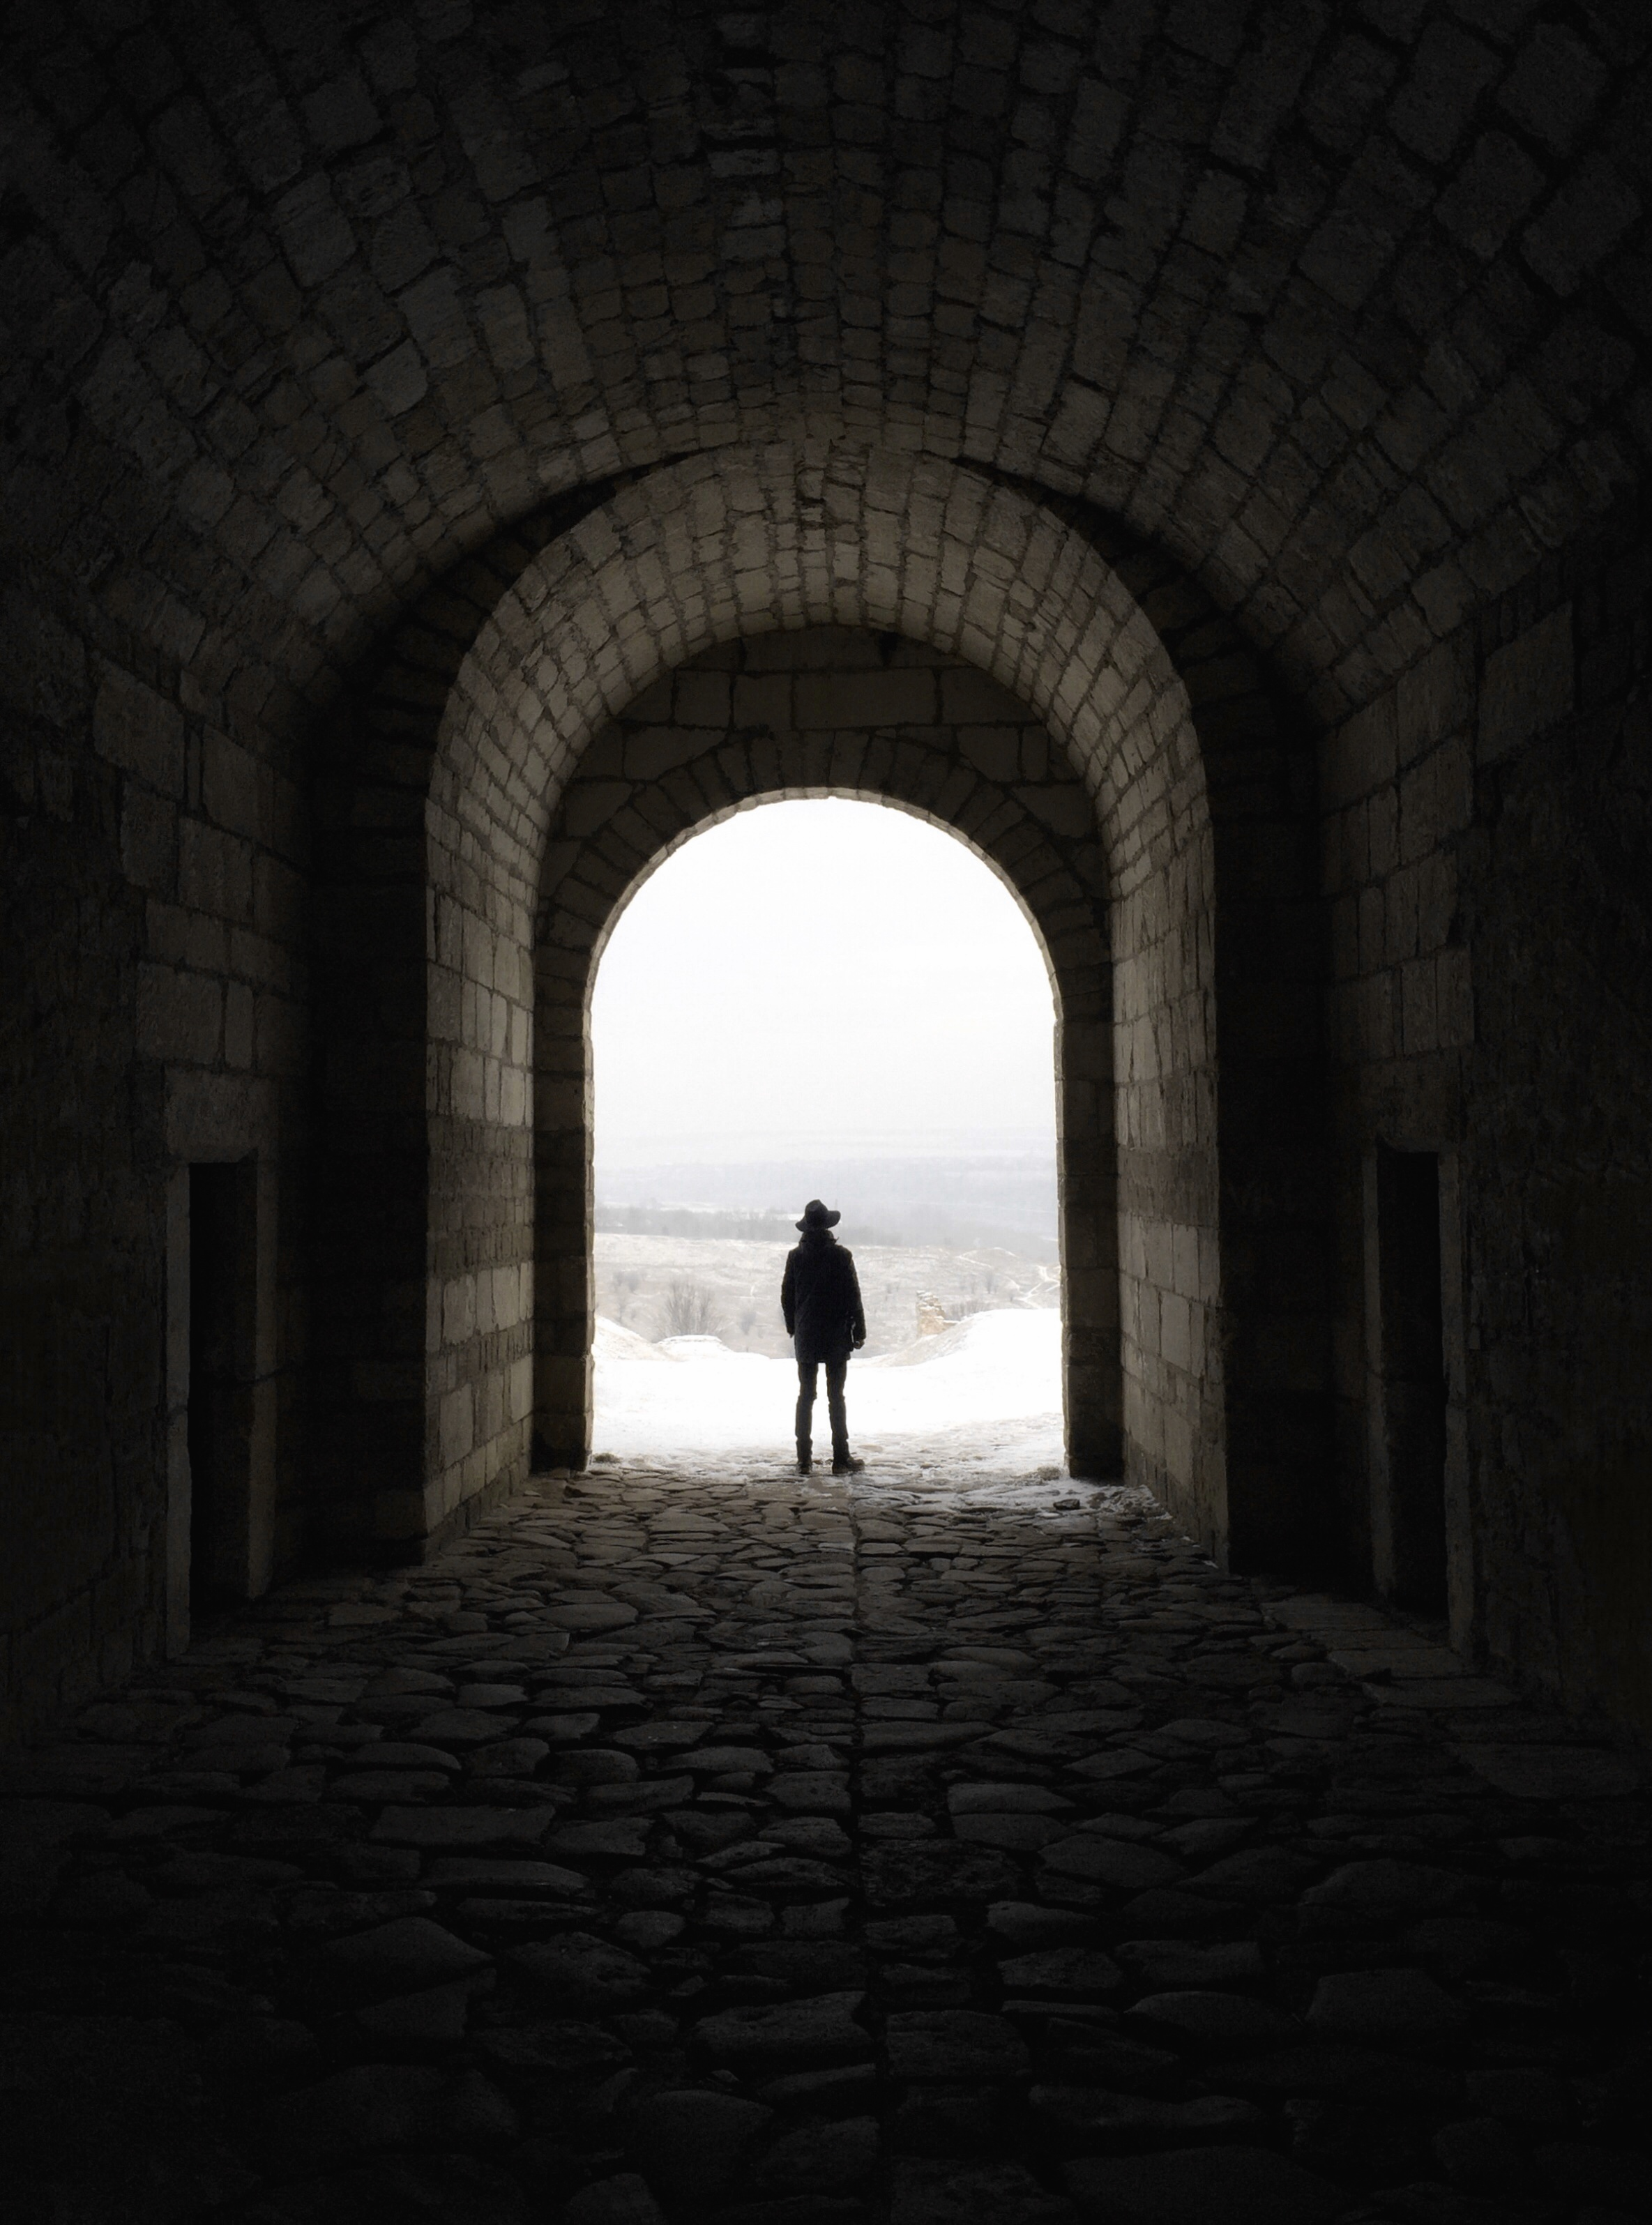 Beautiful Iphone 5 Wallpapers Greyscale Photography Of Man Walking On Tunnel 183 Free